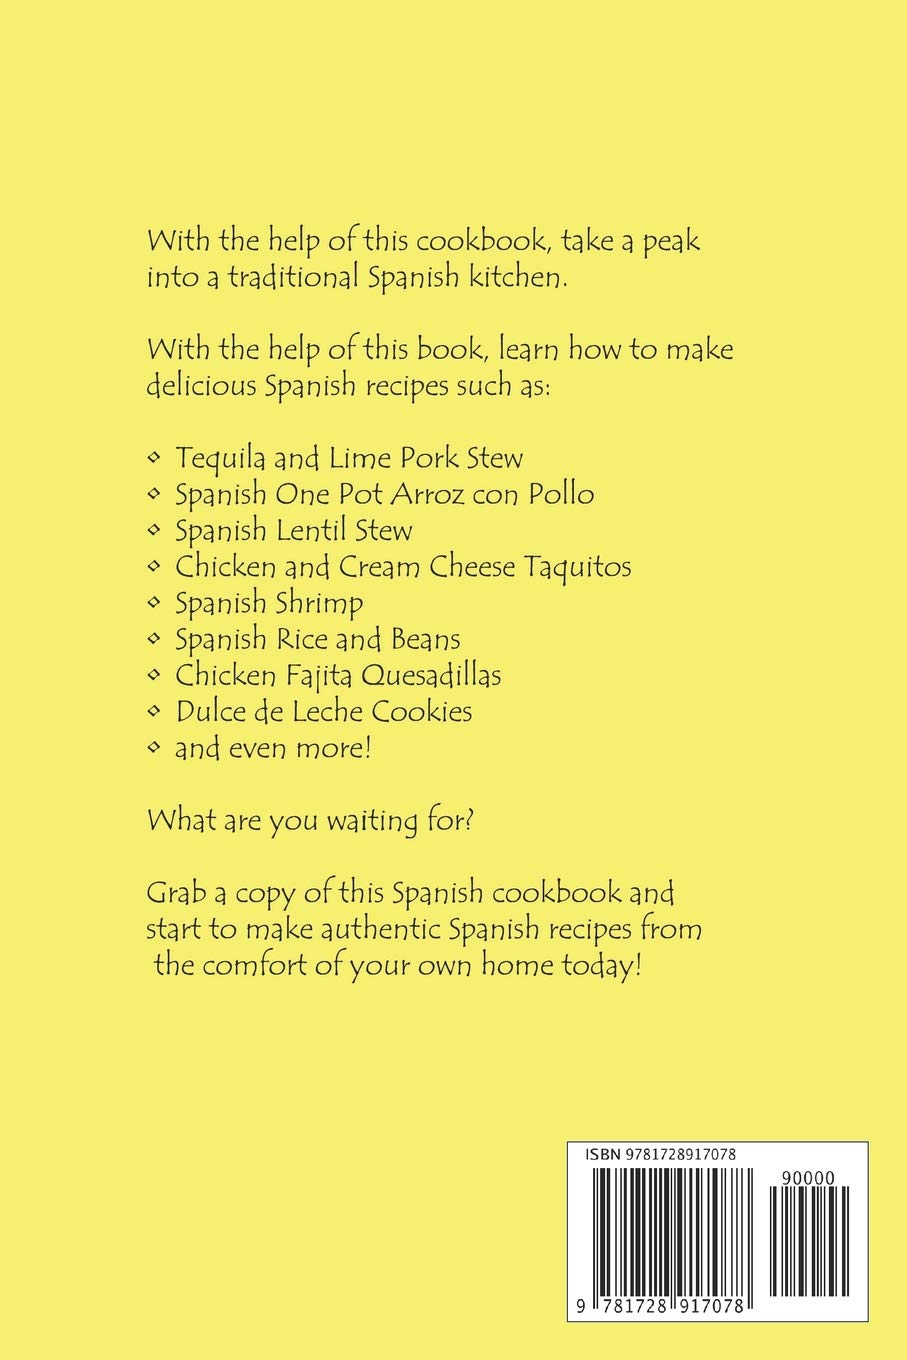 Spanish Food: Spanish Recipes from an American Kitchen: Amazon.es: Martha Stone: Libros en idiomas extranjeros